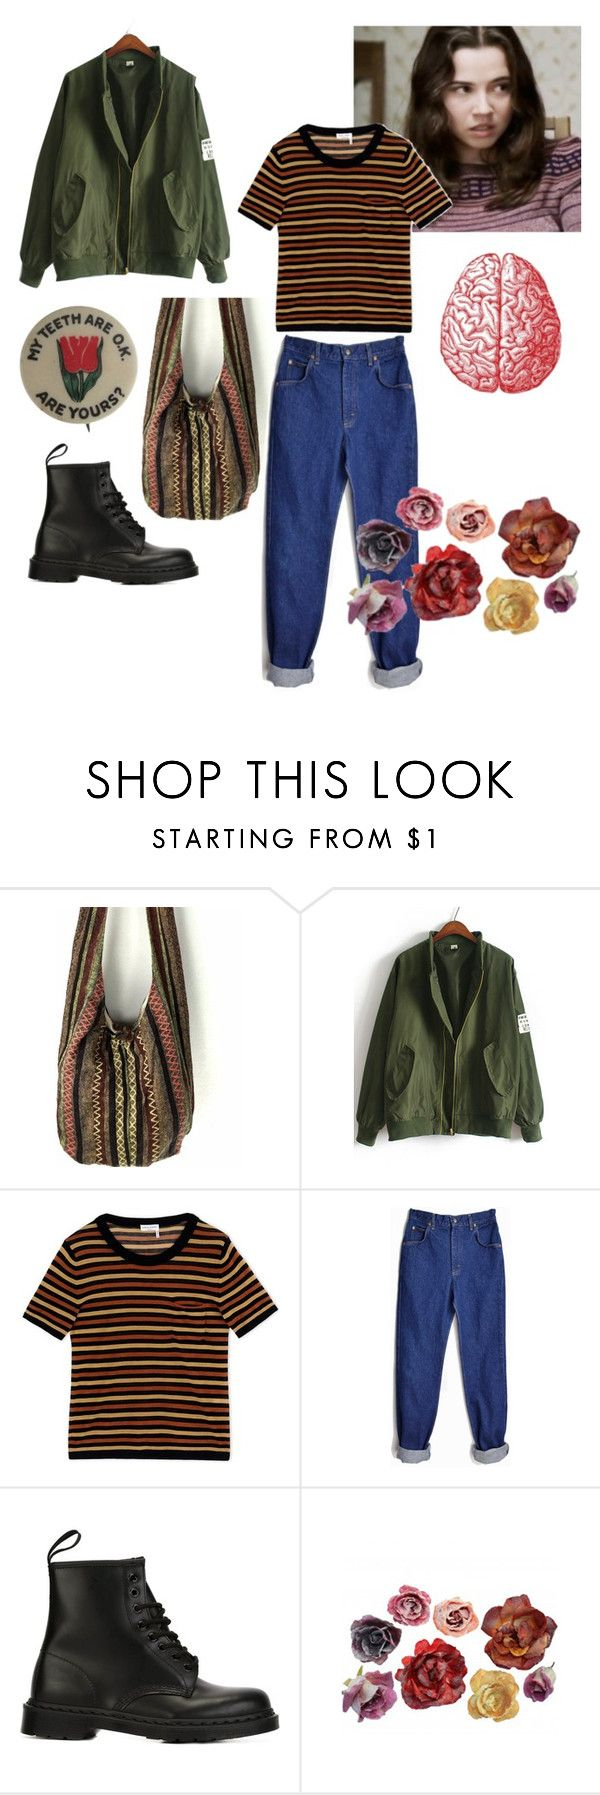 """""""Lindsay weir (( contest ))"""" by angel-bread ❤ liked on Polyvore featuring Sonia Rykiel and Dr. Martens"""